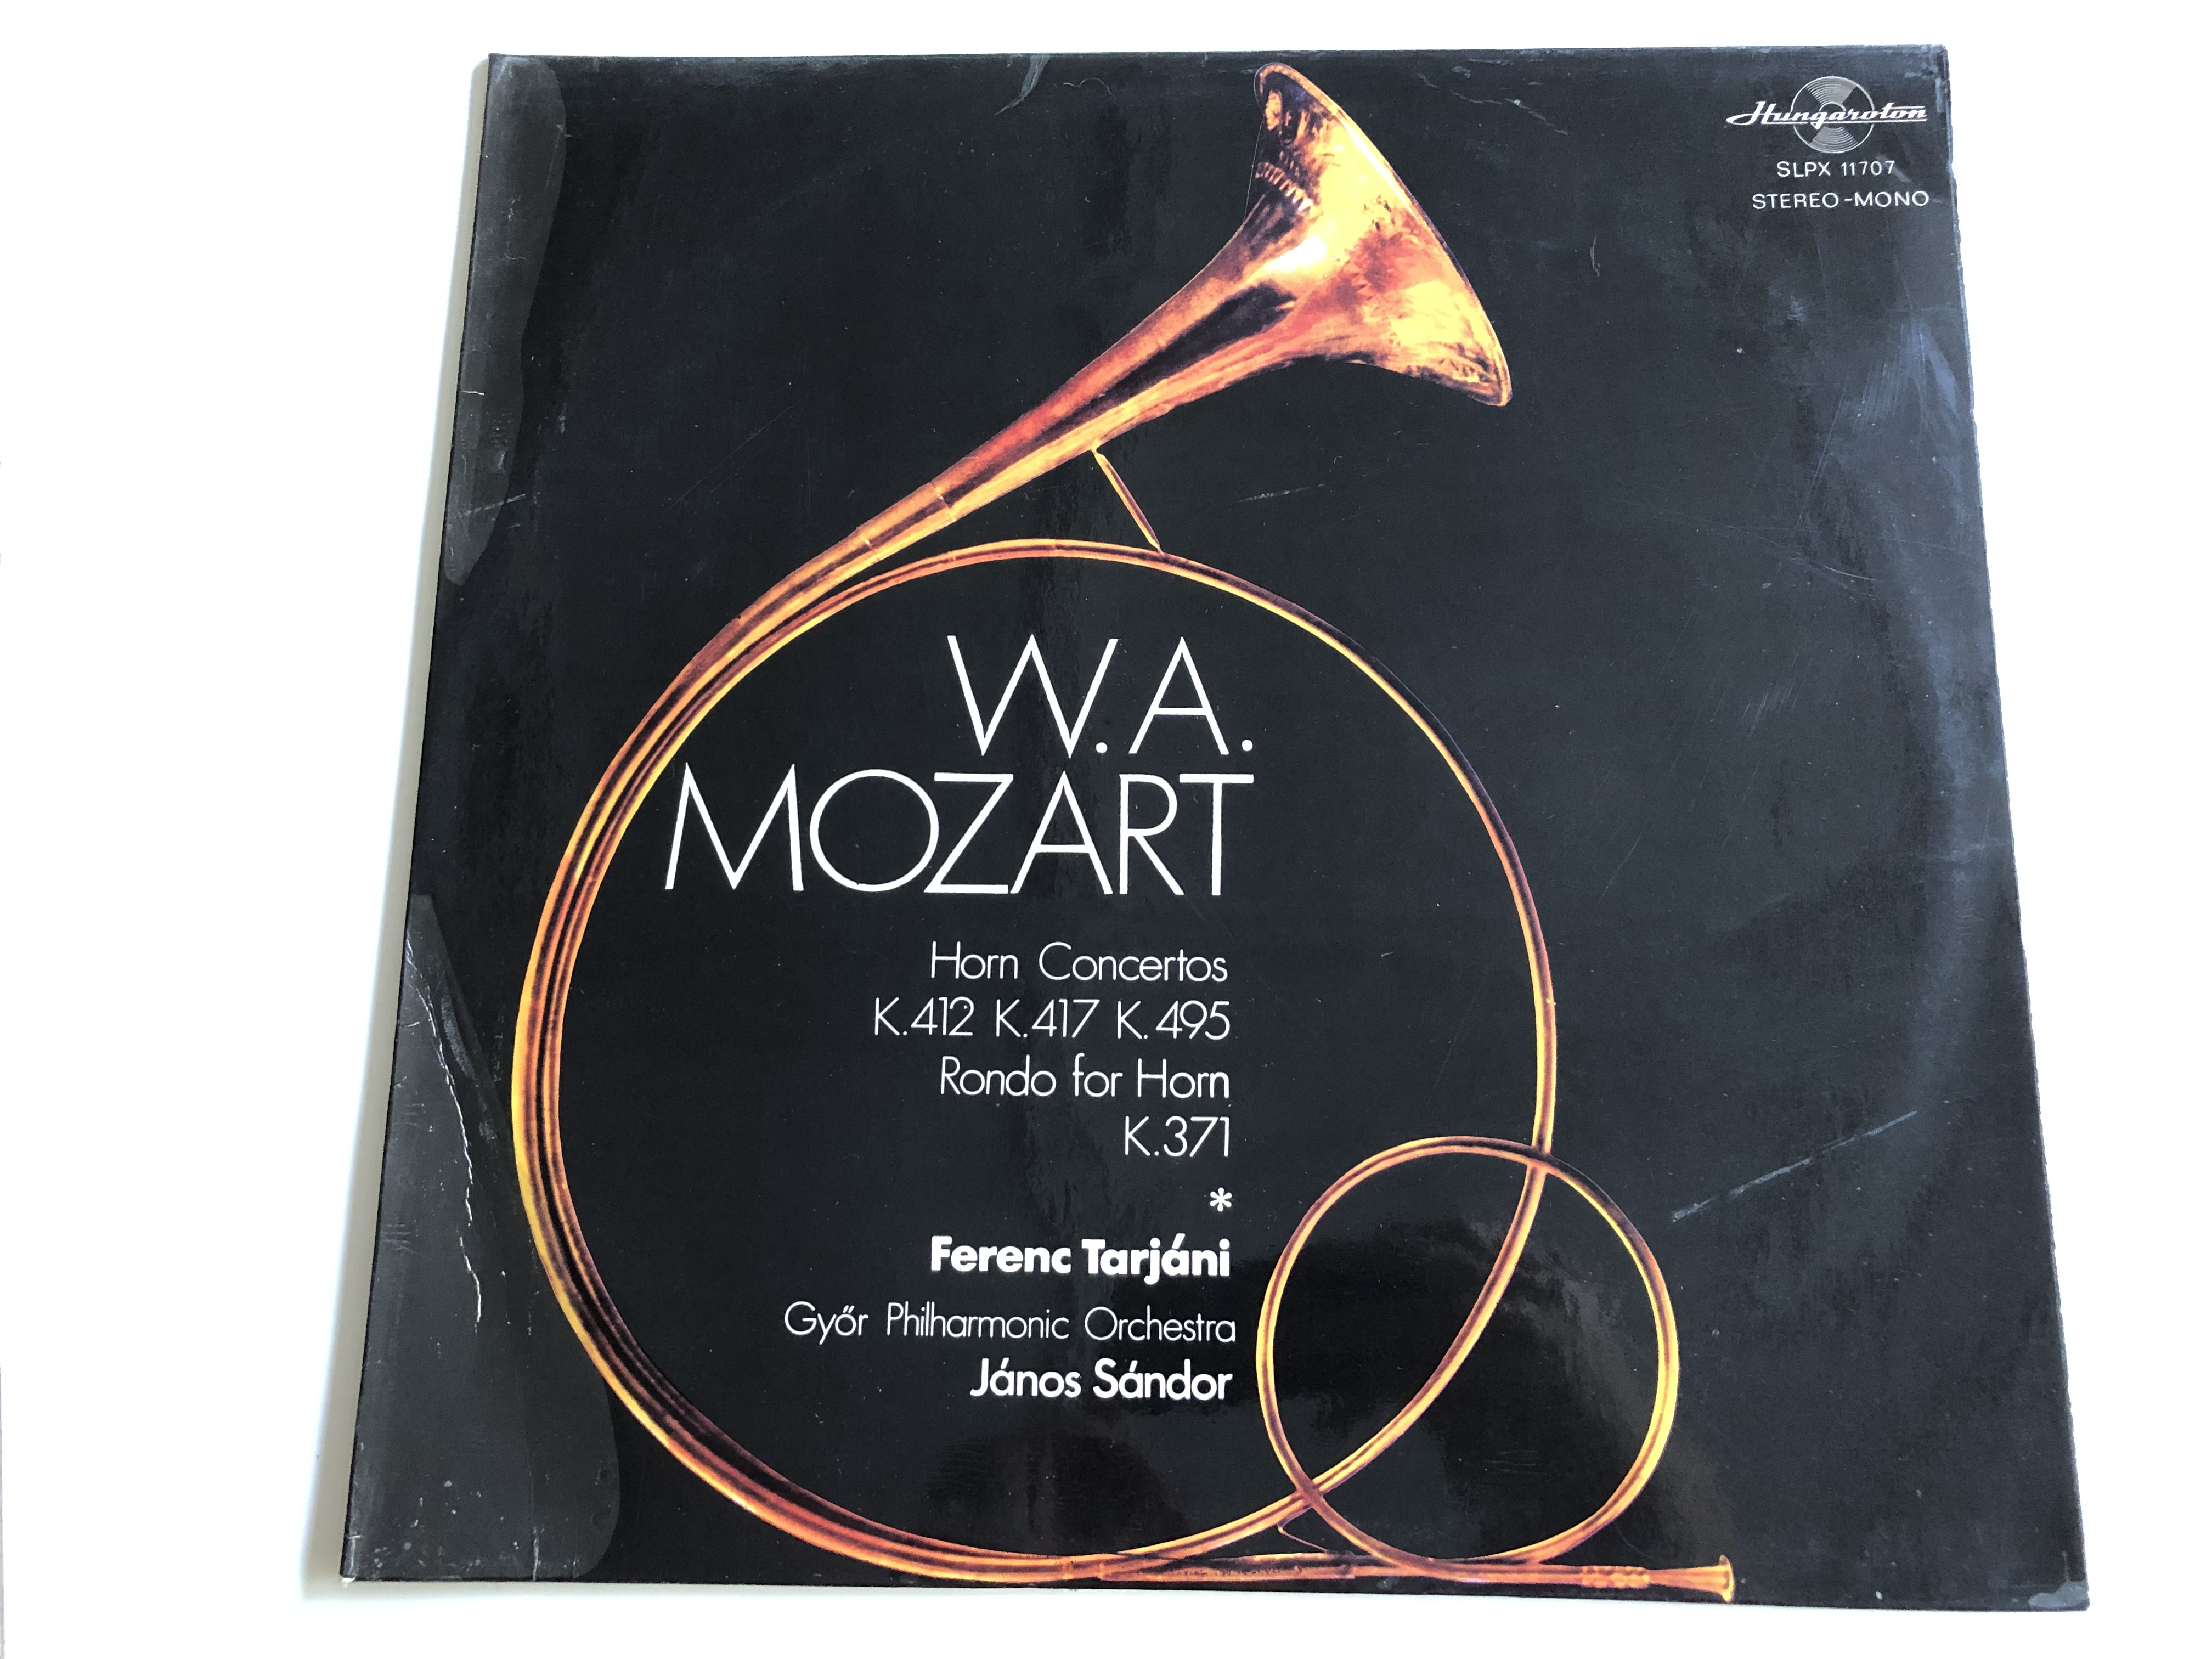 w.a-mozart-horn-concertos-k.412-k.417-k.495-rondo-for-horn-k.371-ferenc-tarj-ni-gy-r-philharmonic-orchestra-conducted-by-j-nos-s-ndor-hungaroton-slpx-11707-lp-stereo-mono-1-.jpg